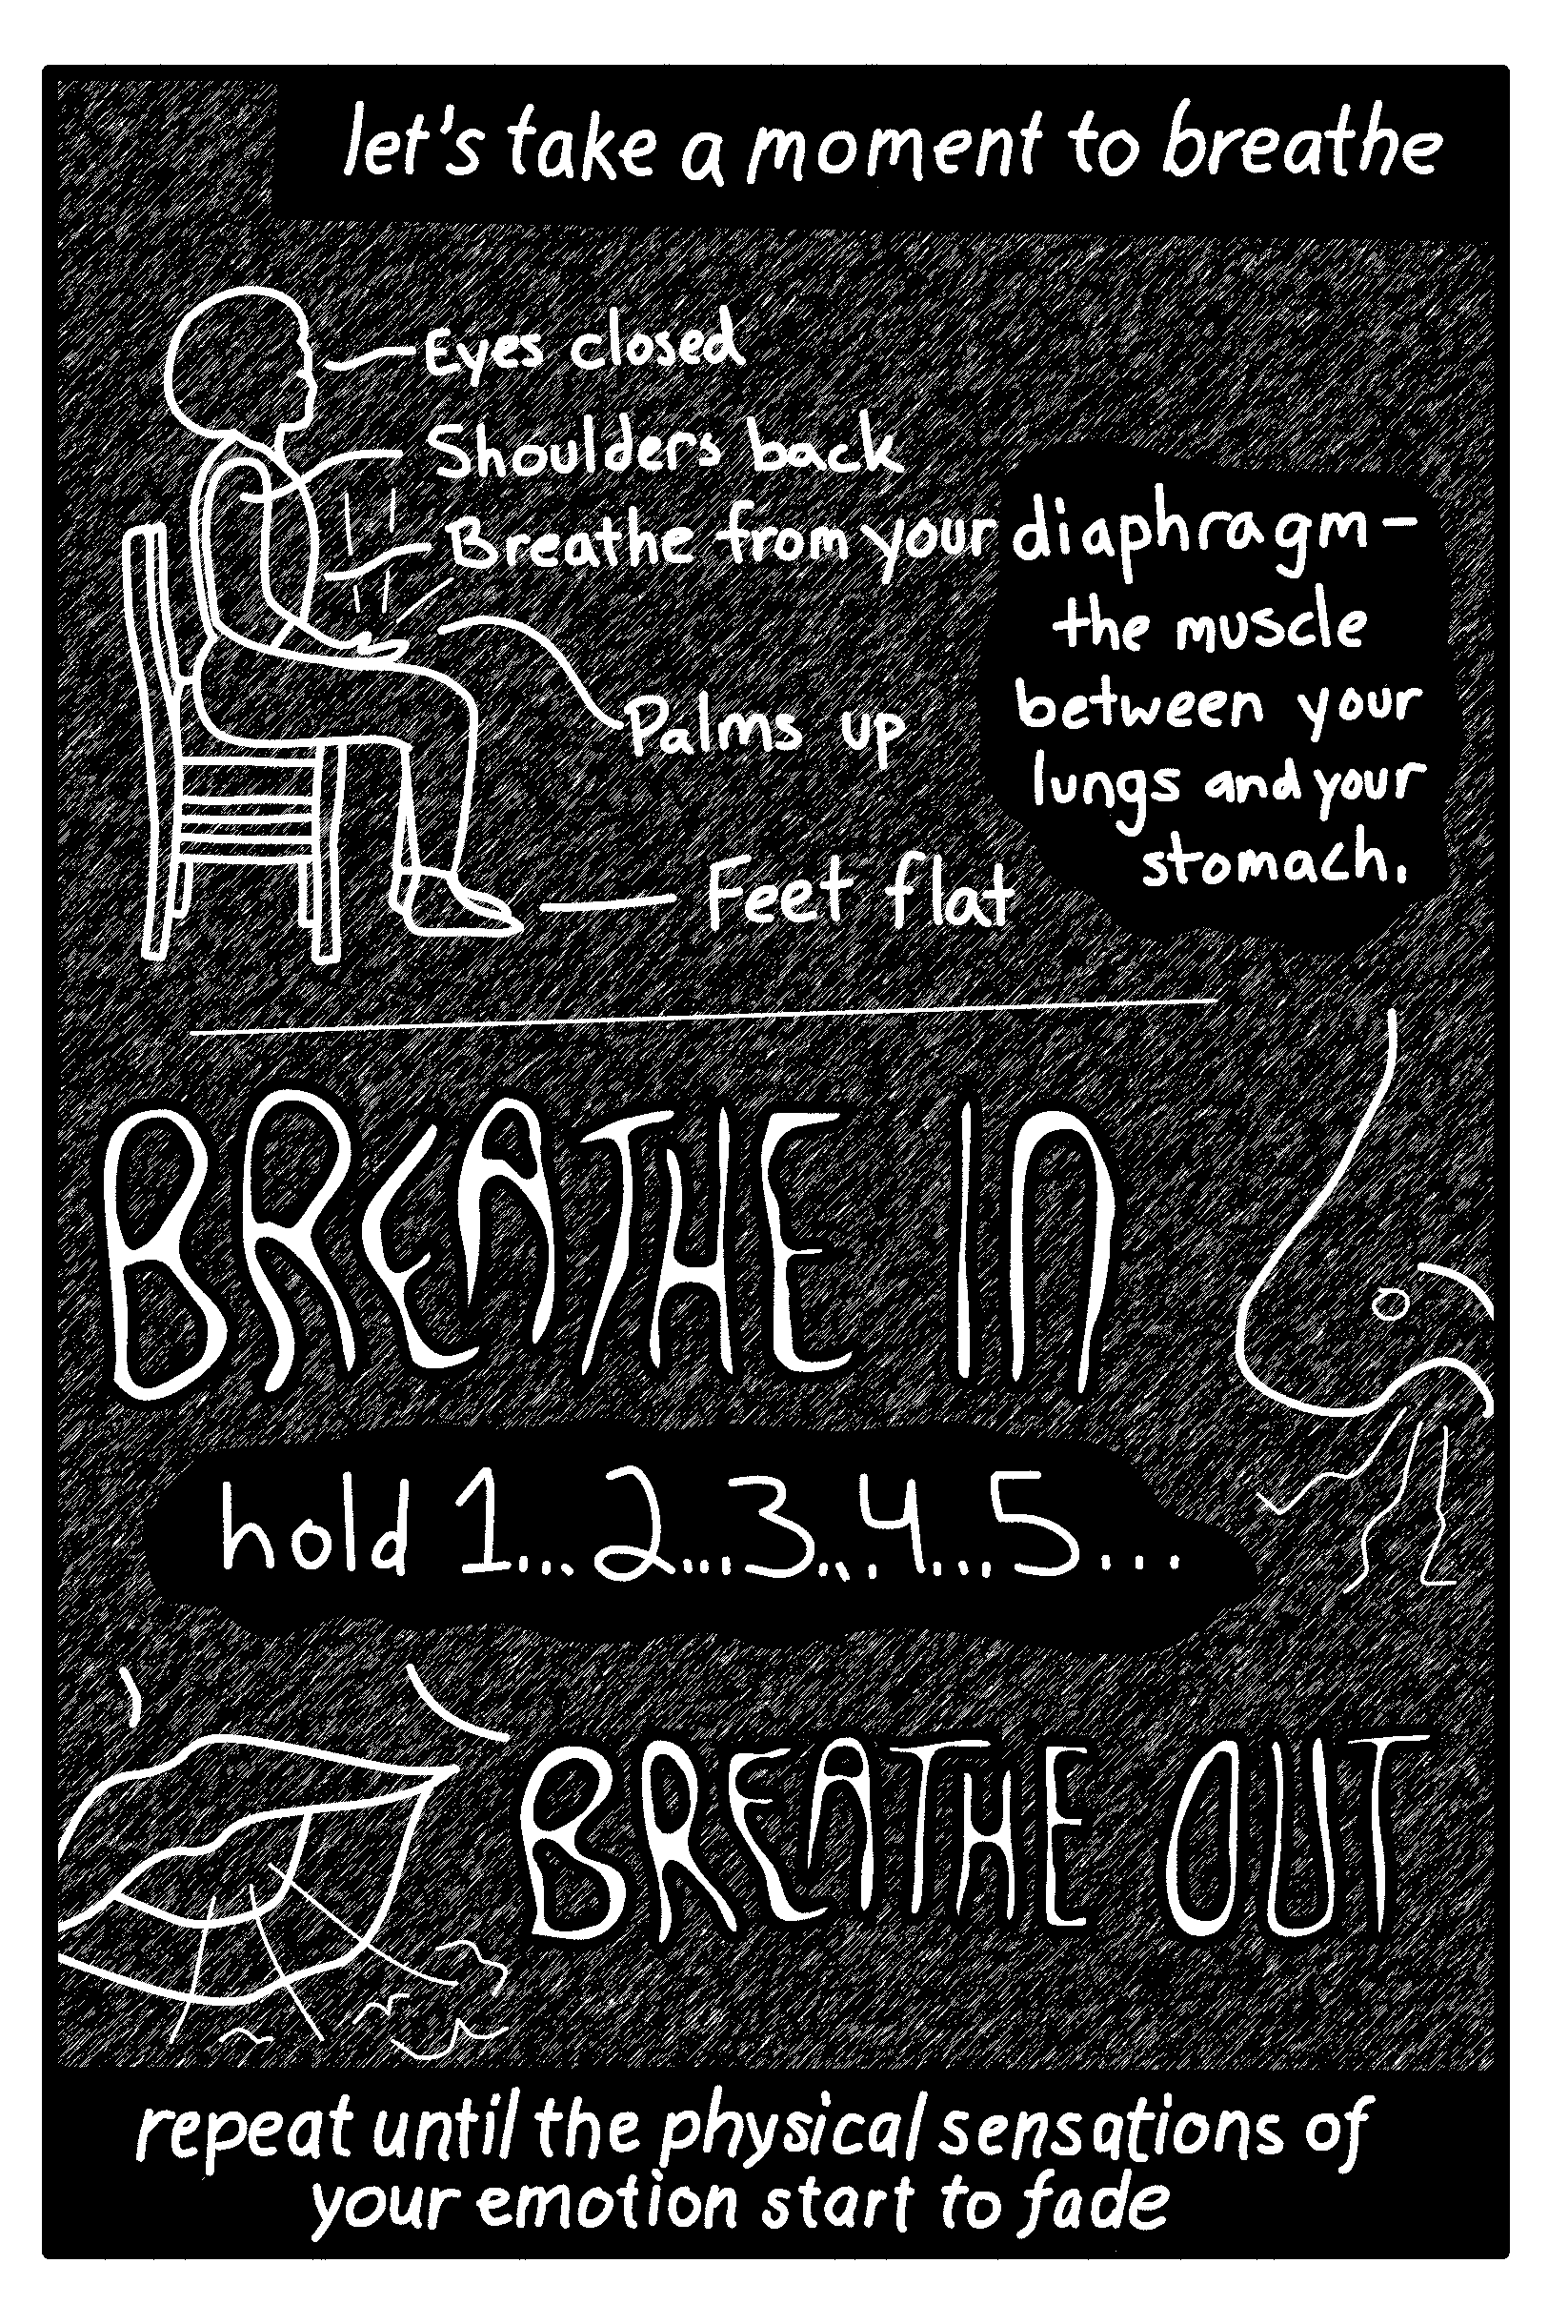 page 4bw.png